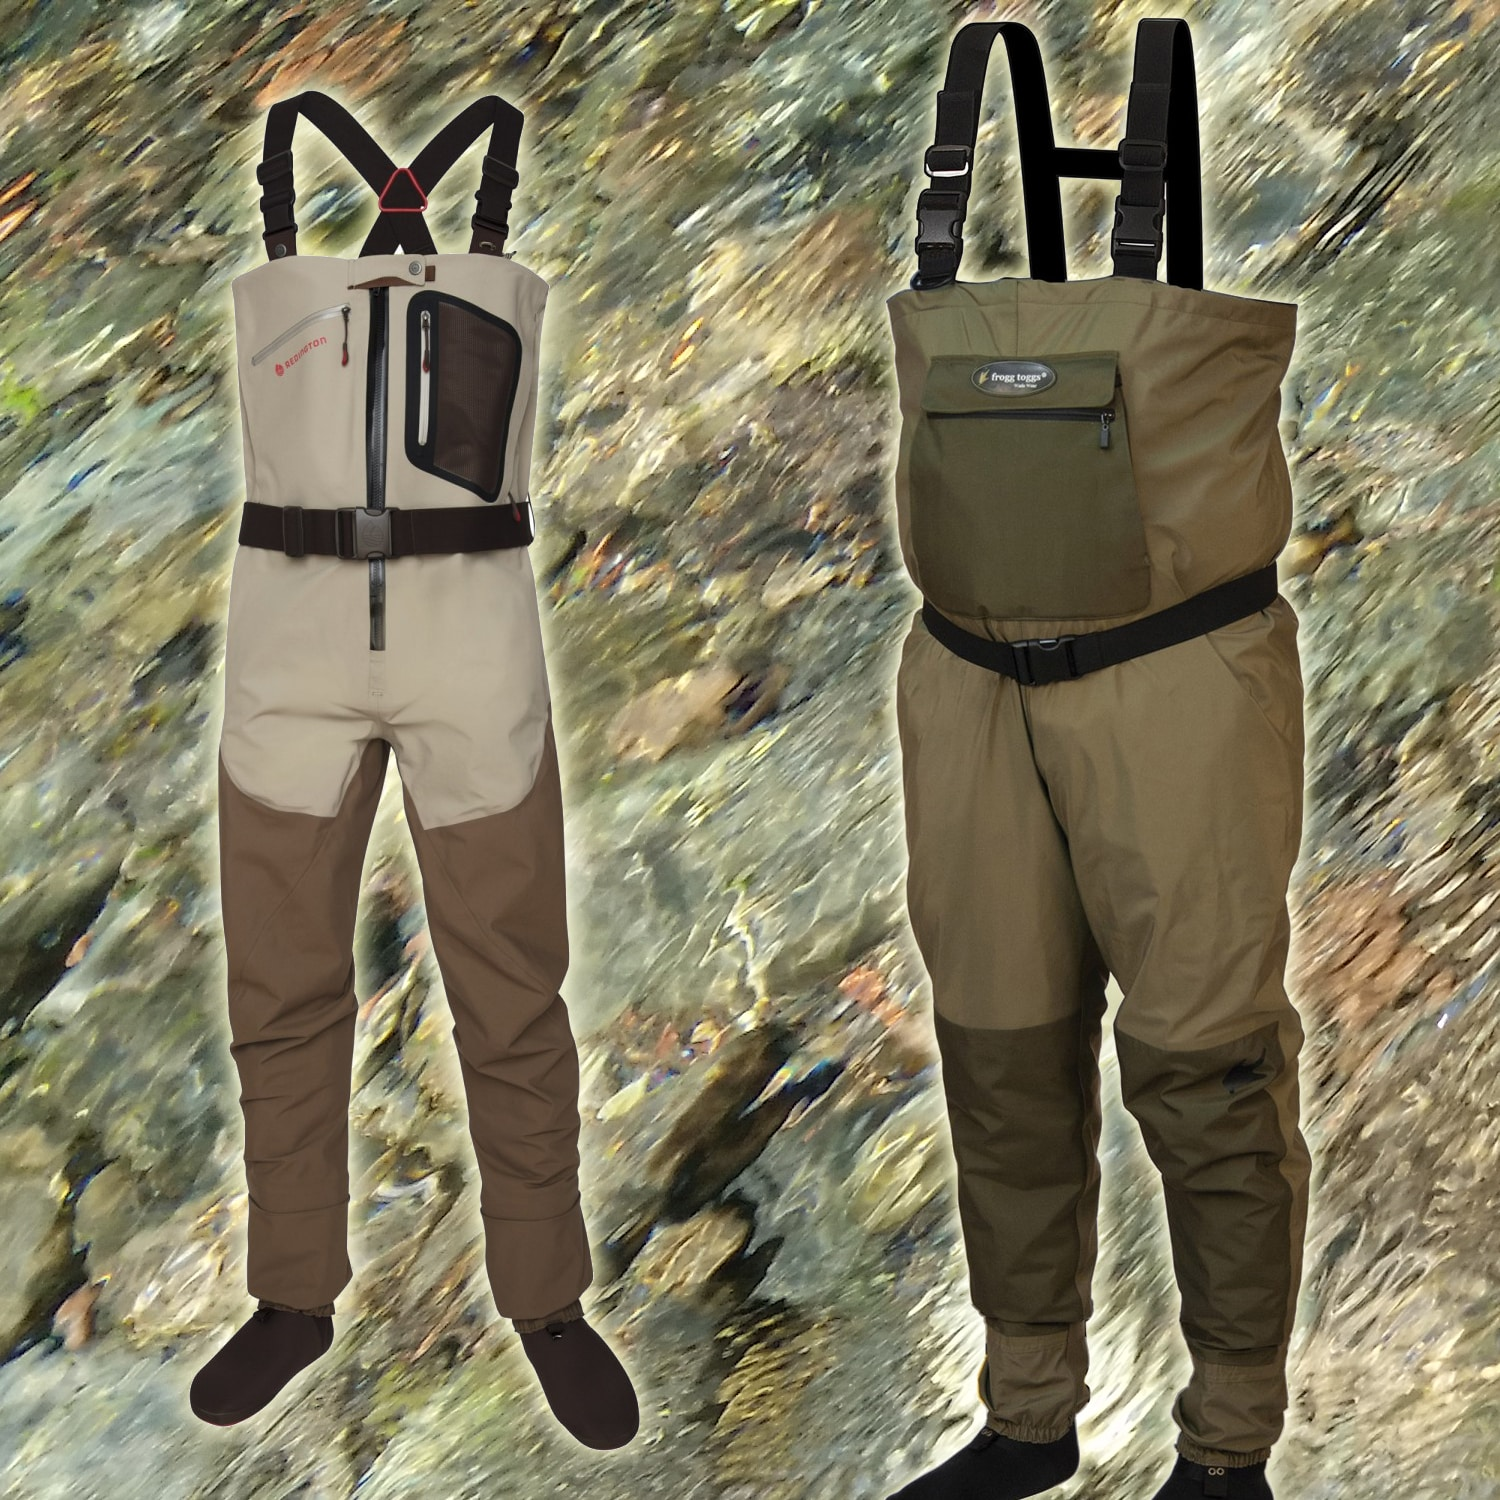 Waders suitable for the fly fisherman